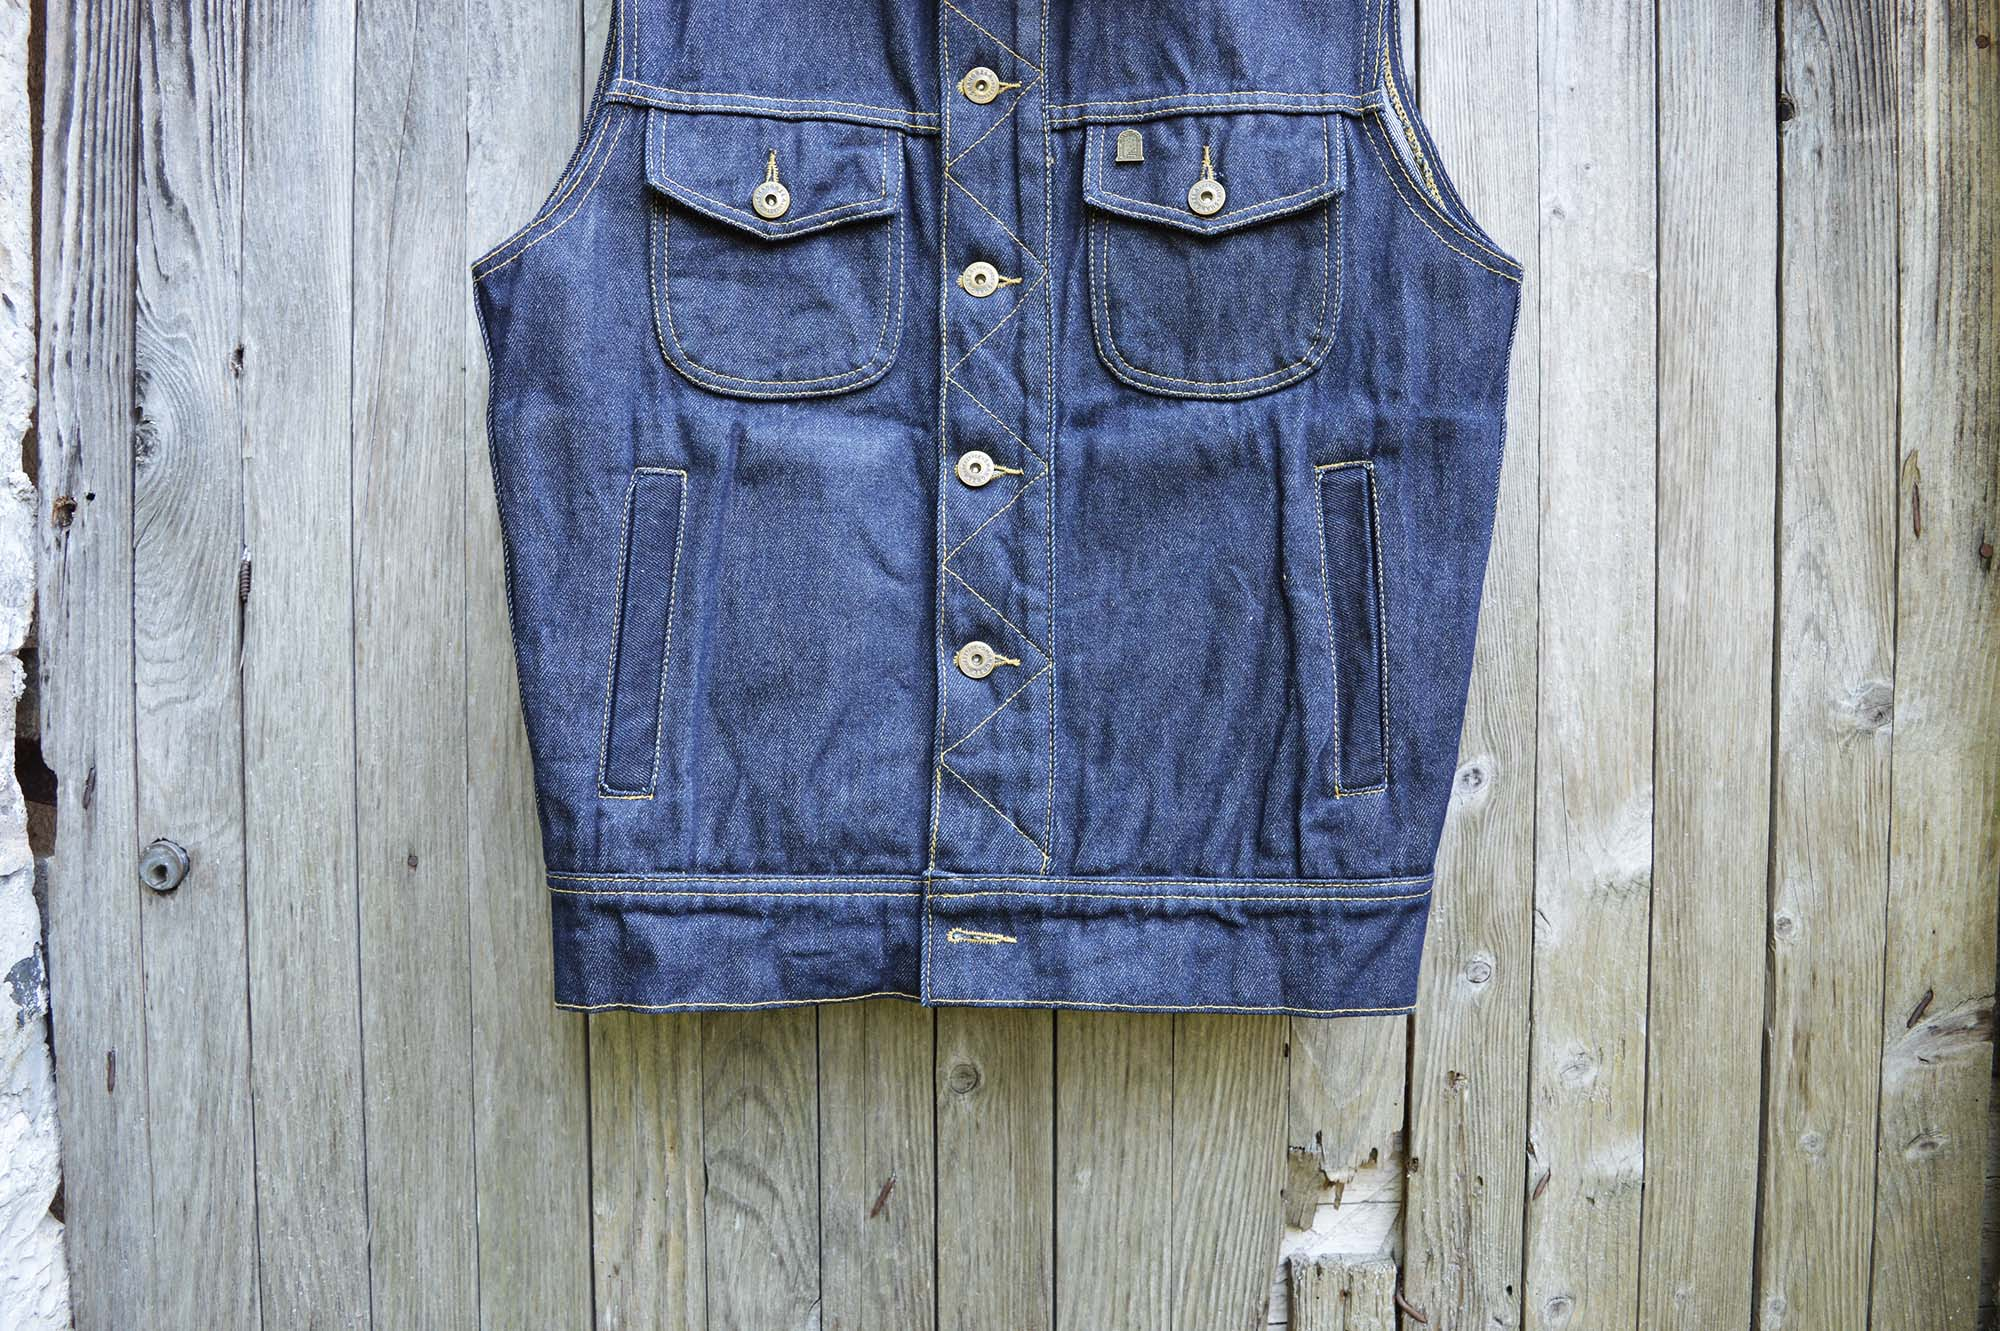 shangri-la-heritage-single-rider-denim-vest-still-life-front-bottom